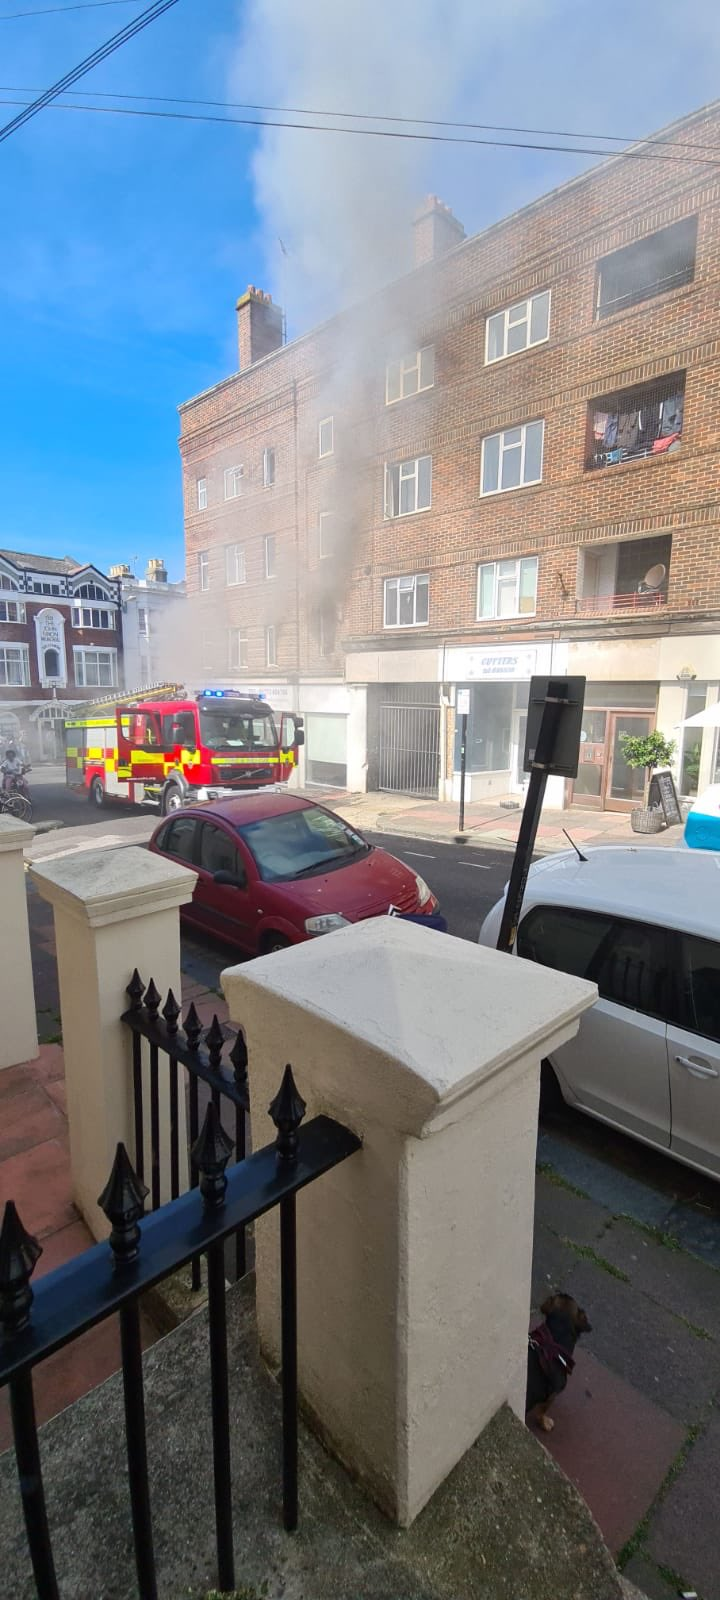 Kitchen Blaze extensively damages Brighton Flat This Morning